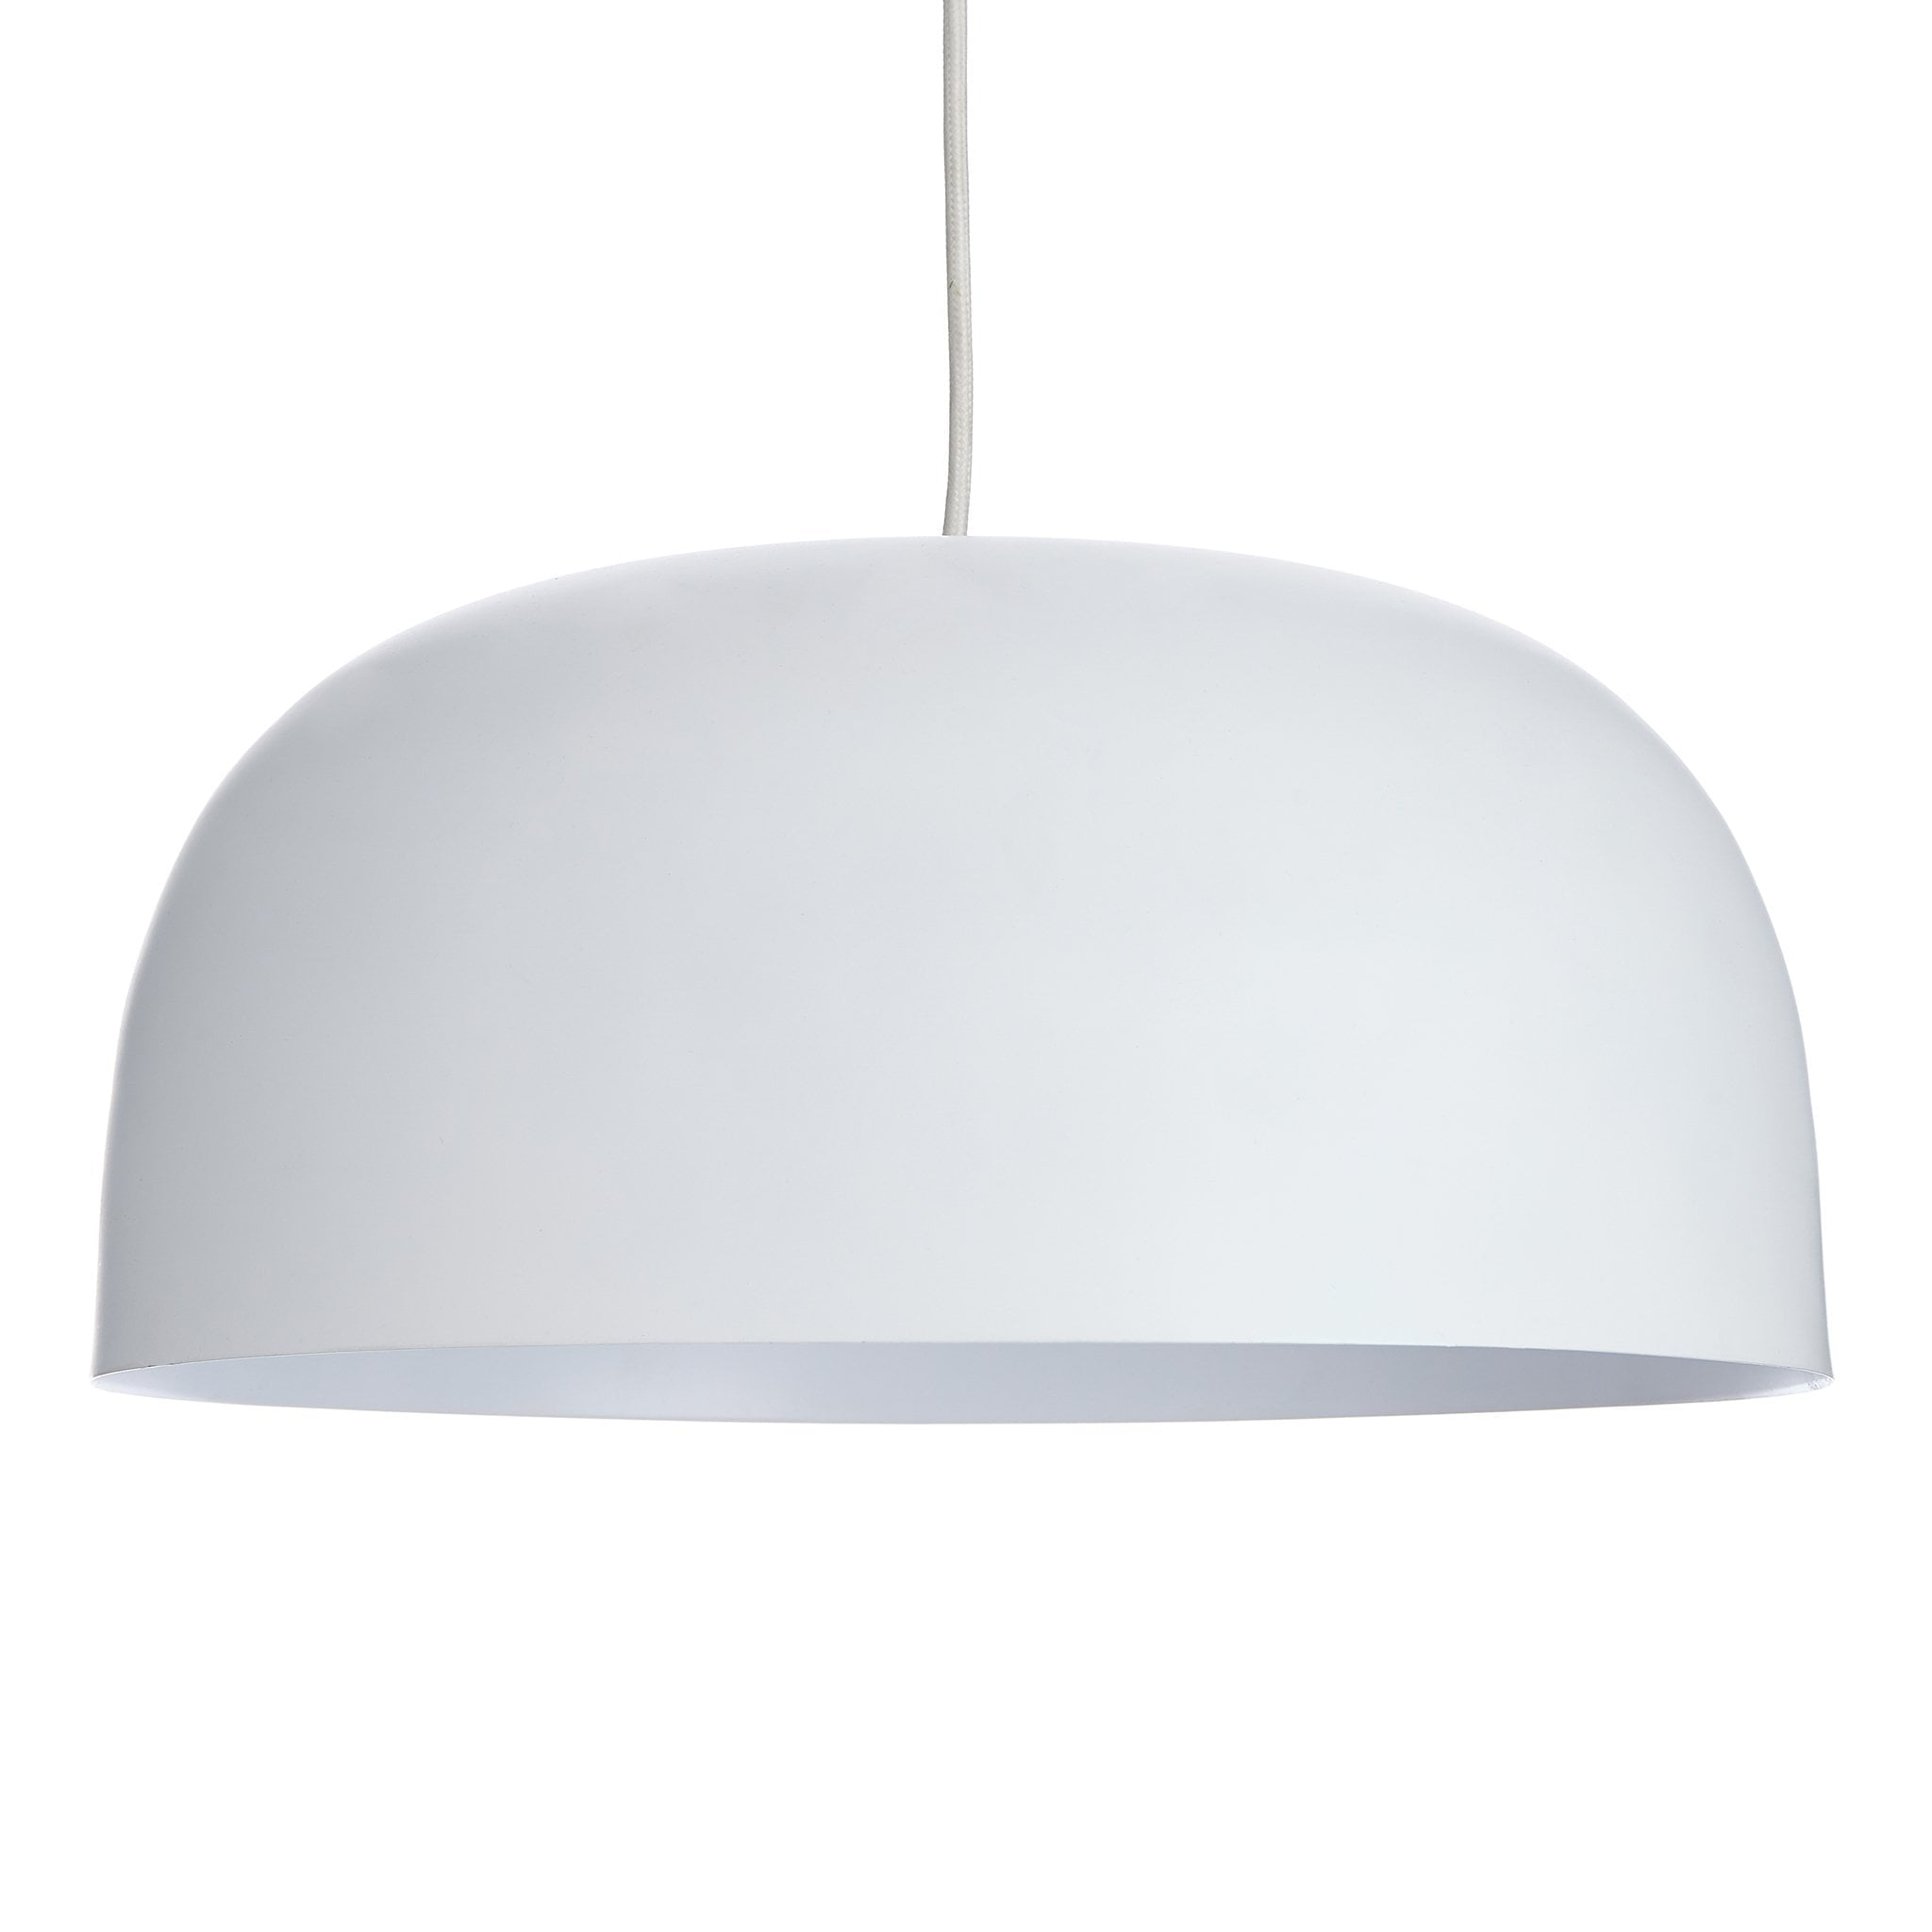 Sadum Pendant Lamp white, 100% metal